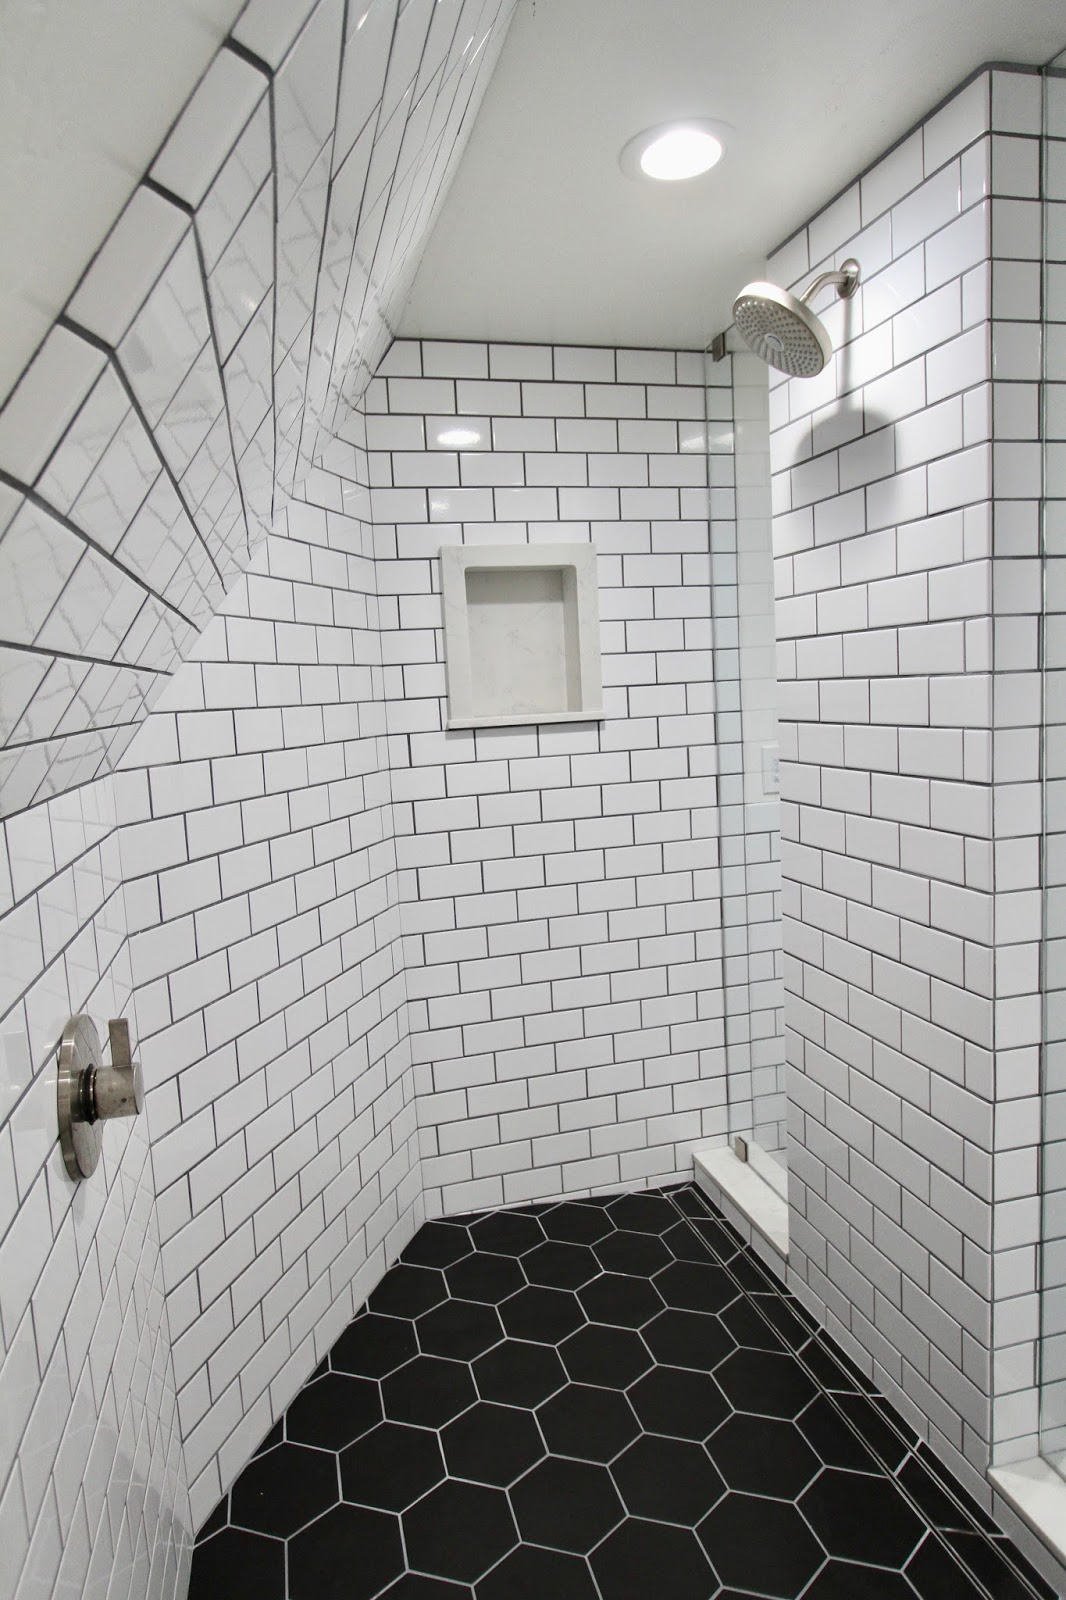 Jess and the gang: A New Master Bathroom